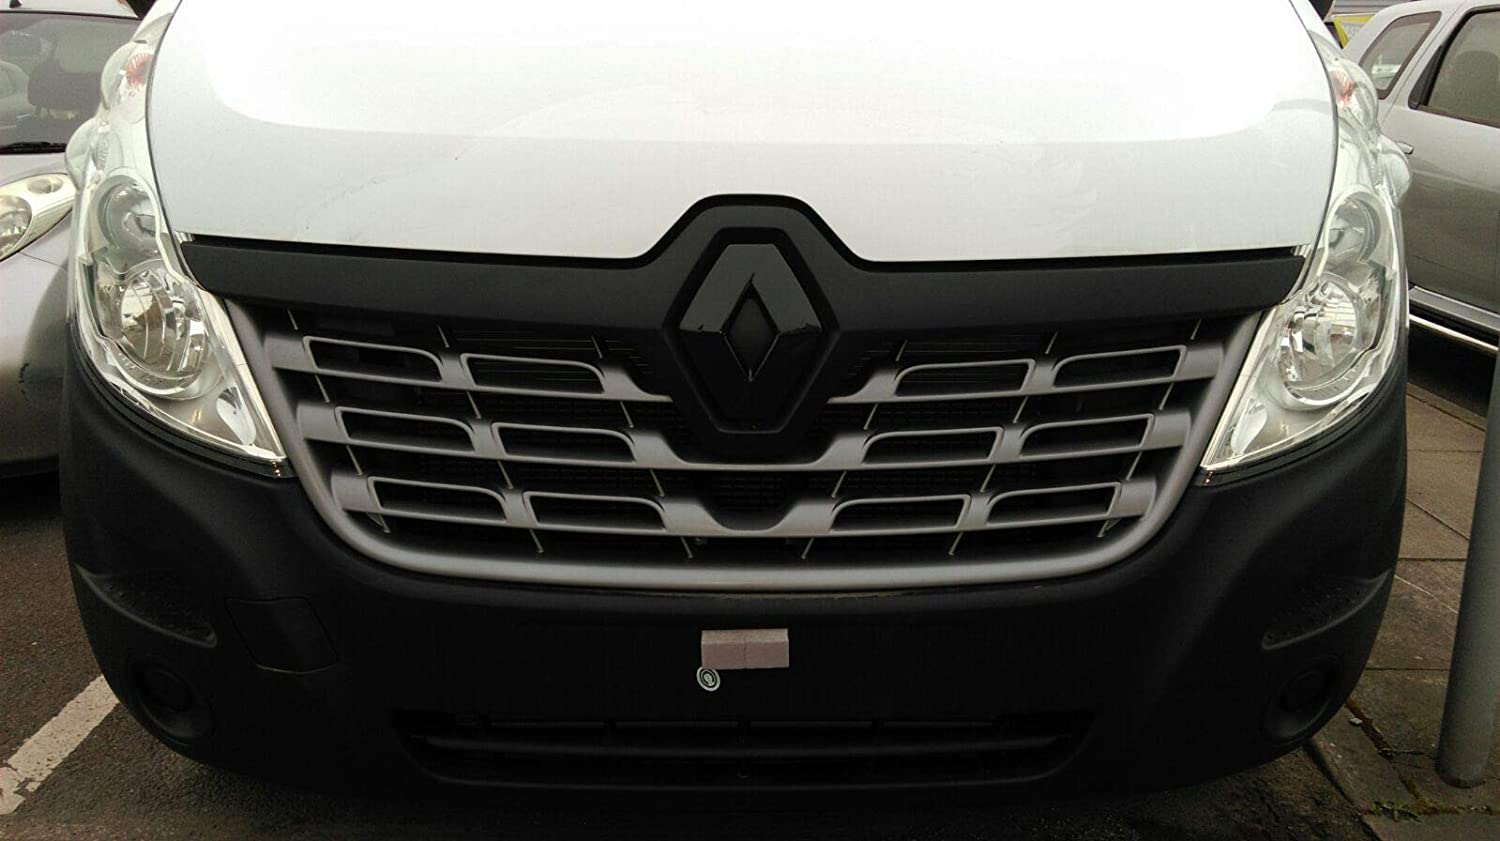 2014 Effet Carbone Badge Housses Avant - Bleu Diamond Performance Renault Master